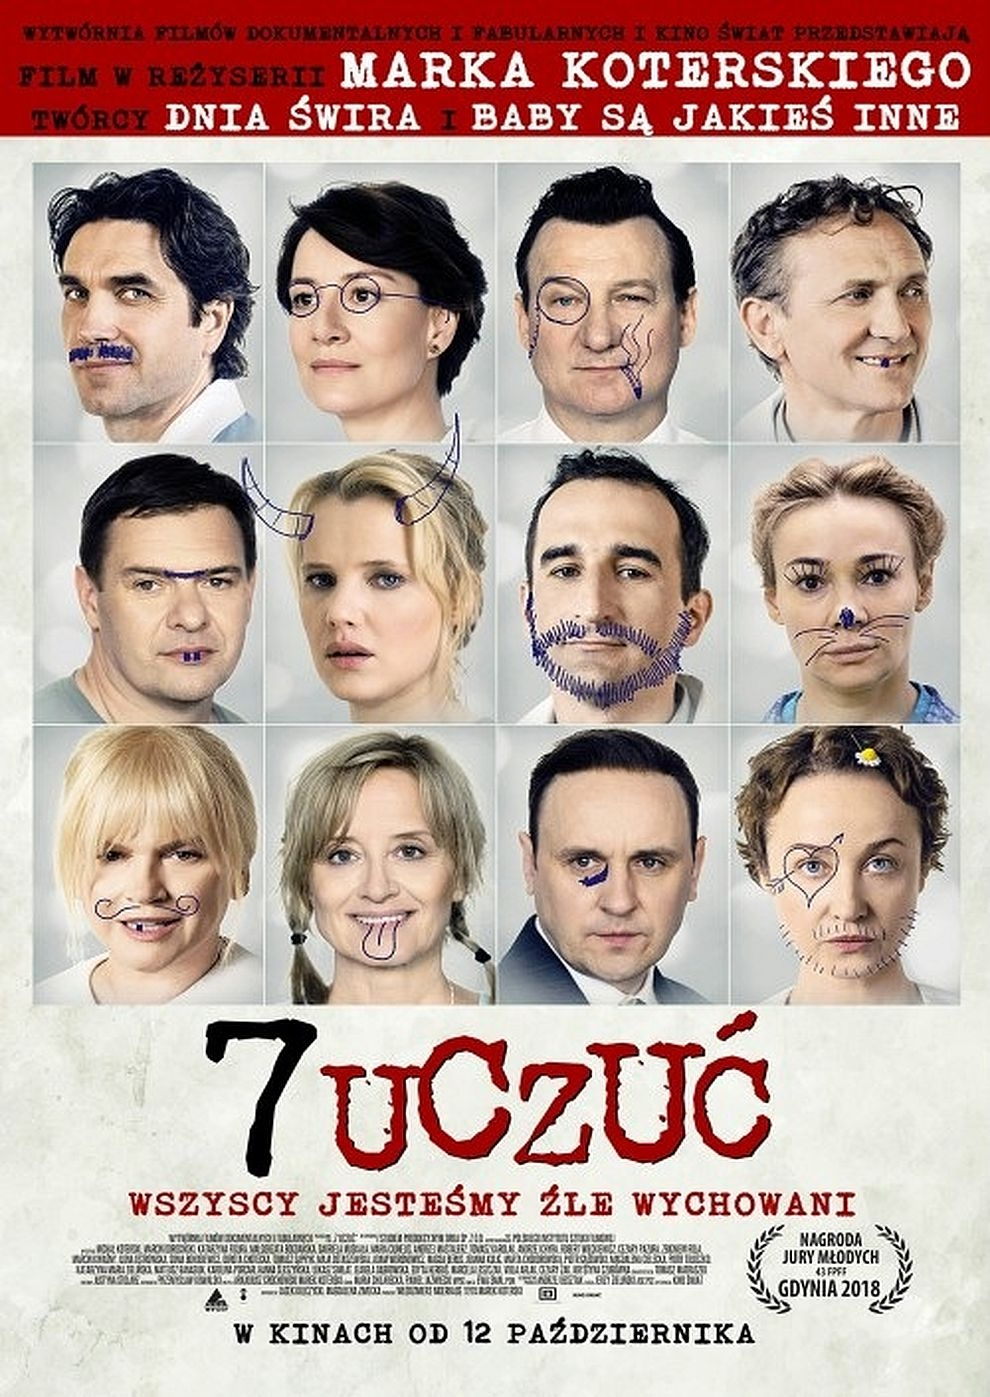 7 Uczuc / 7 Emotions (Poster)